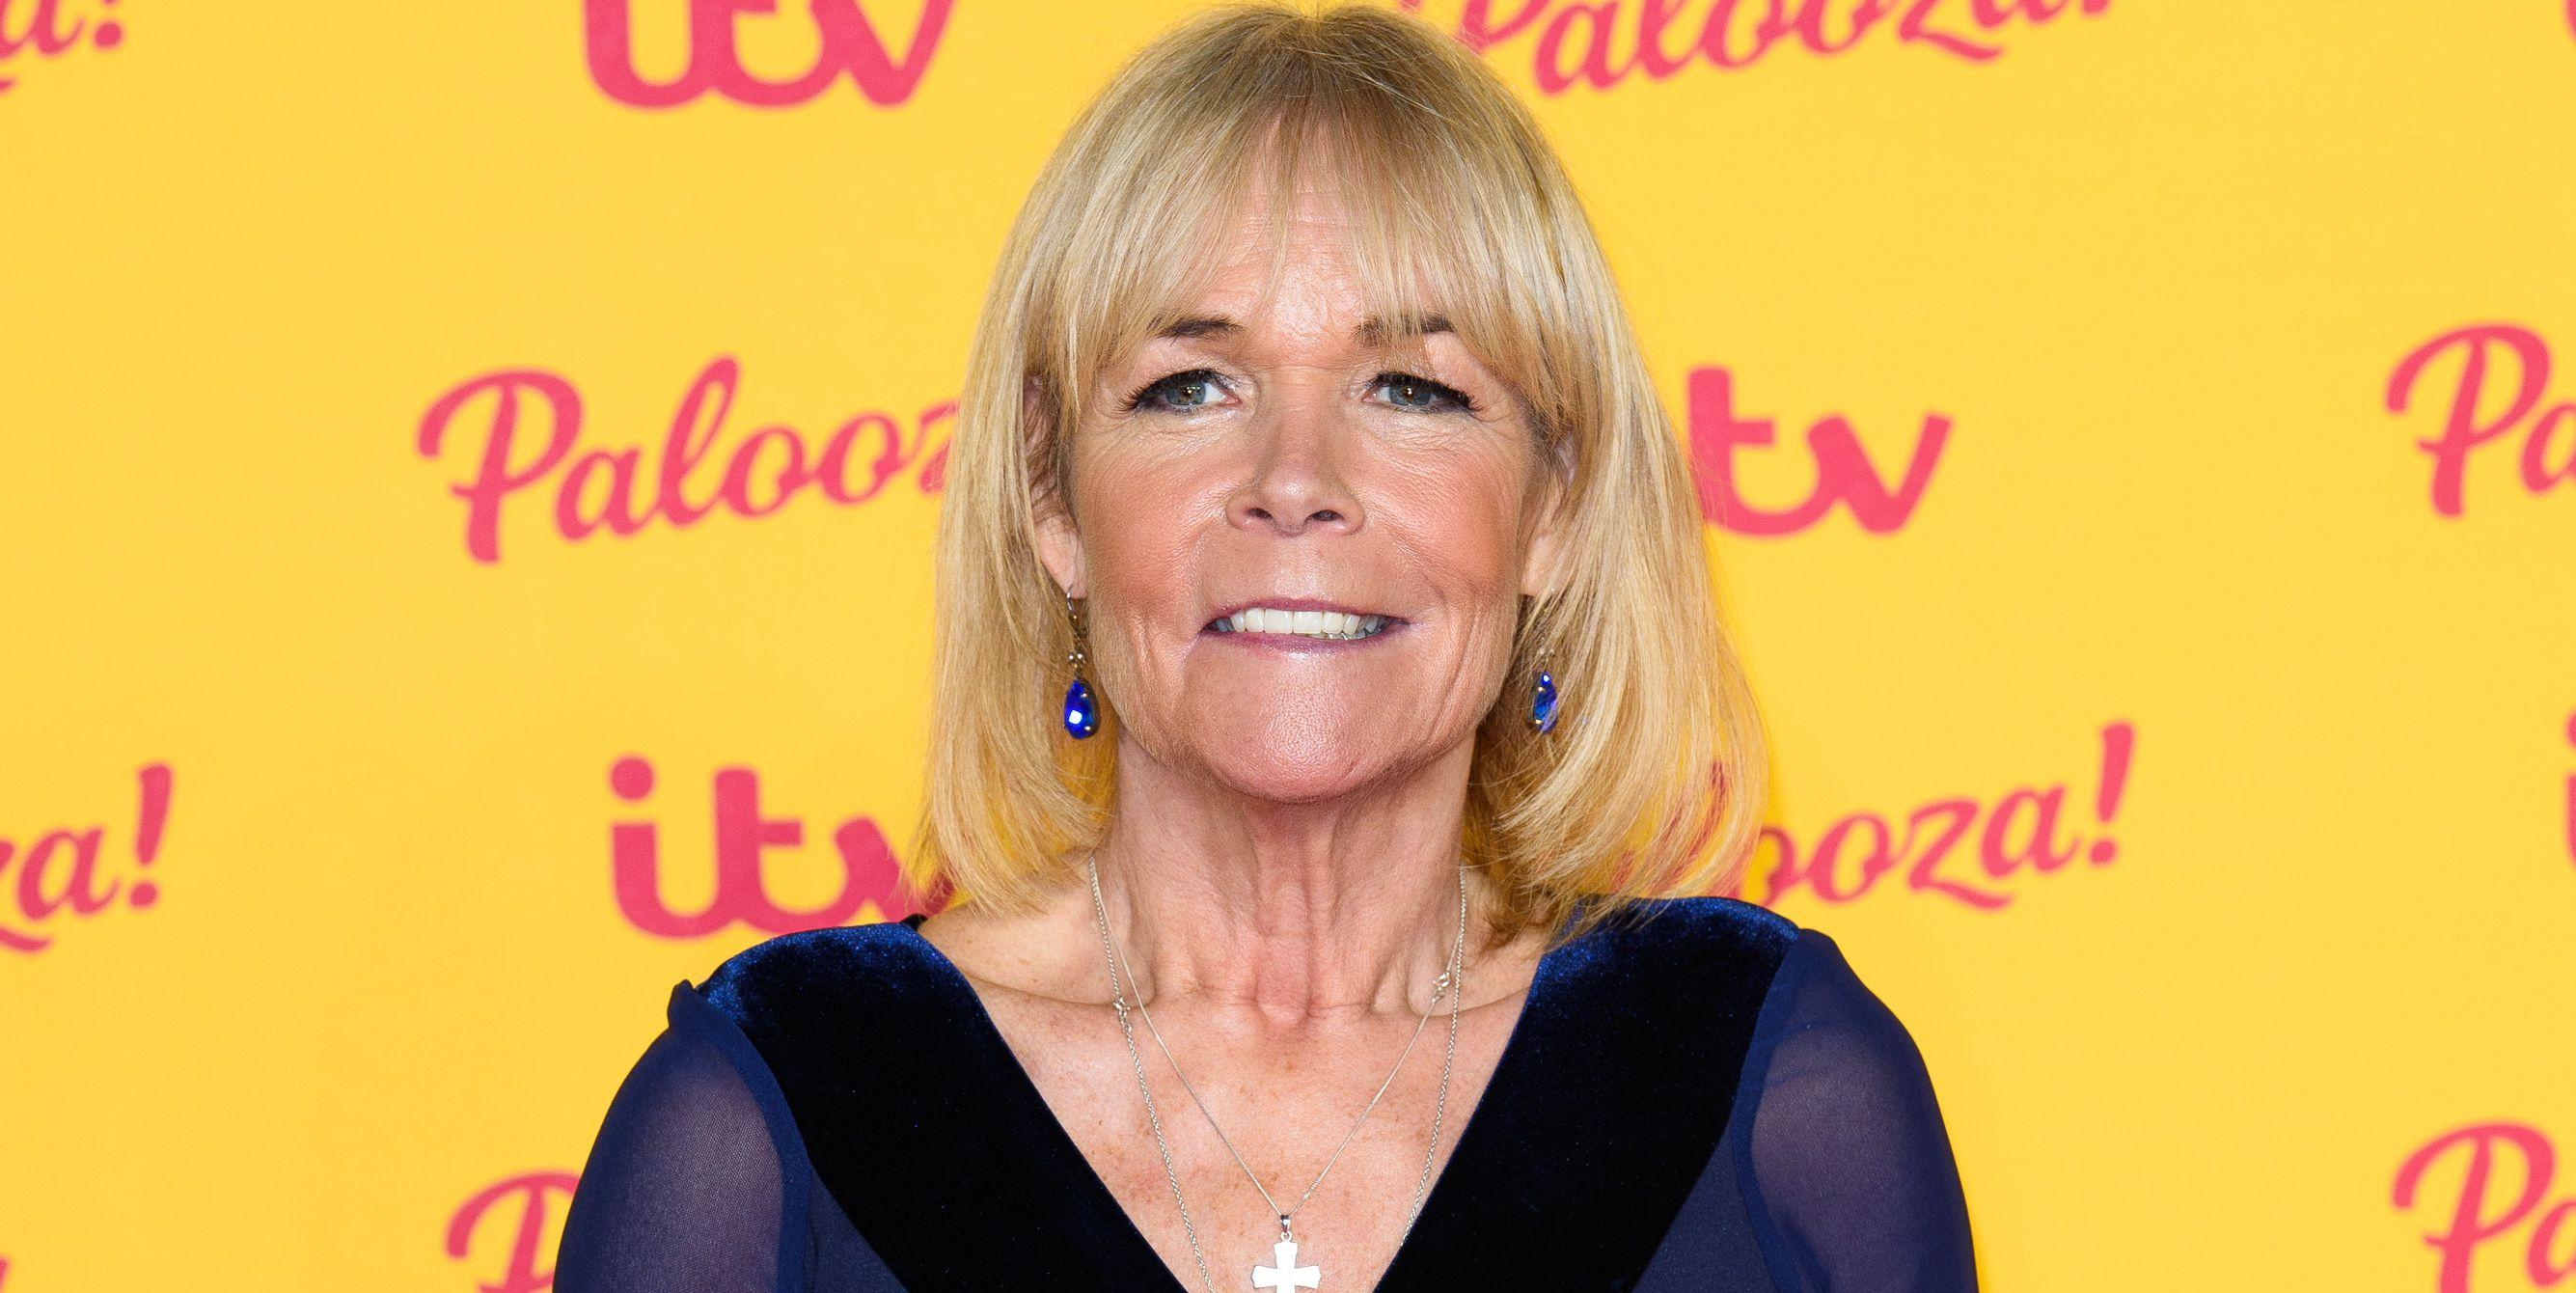 Linda Robson loves this best-selling, figure-flattering Marks Spencer swimsuit Linda Robson loves this best-selling, figure-flattering Marks Spencer swimsuit new picture